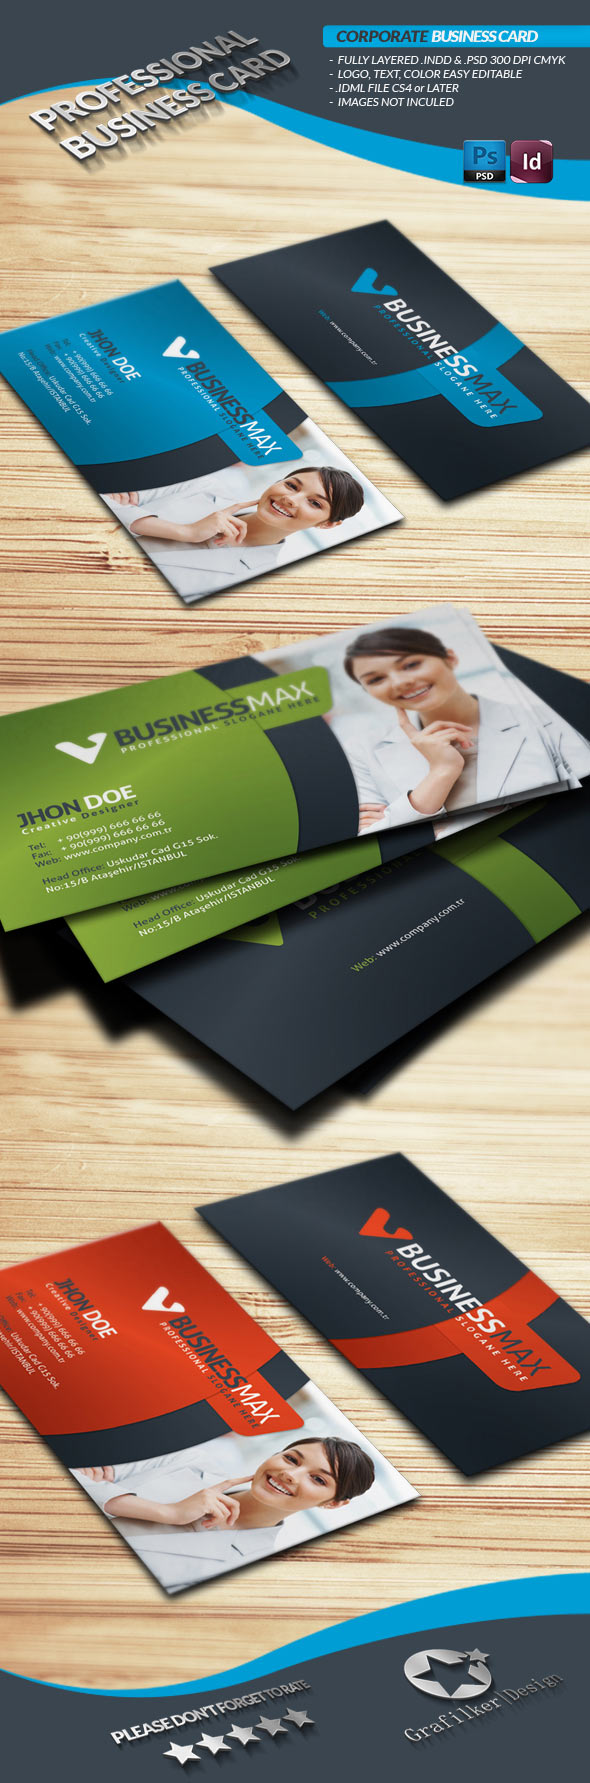 indesign premiumbusiness card template premium photo business